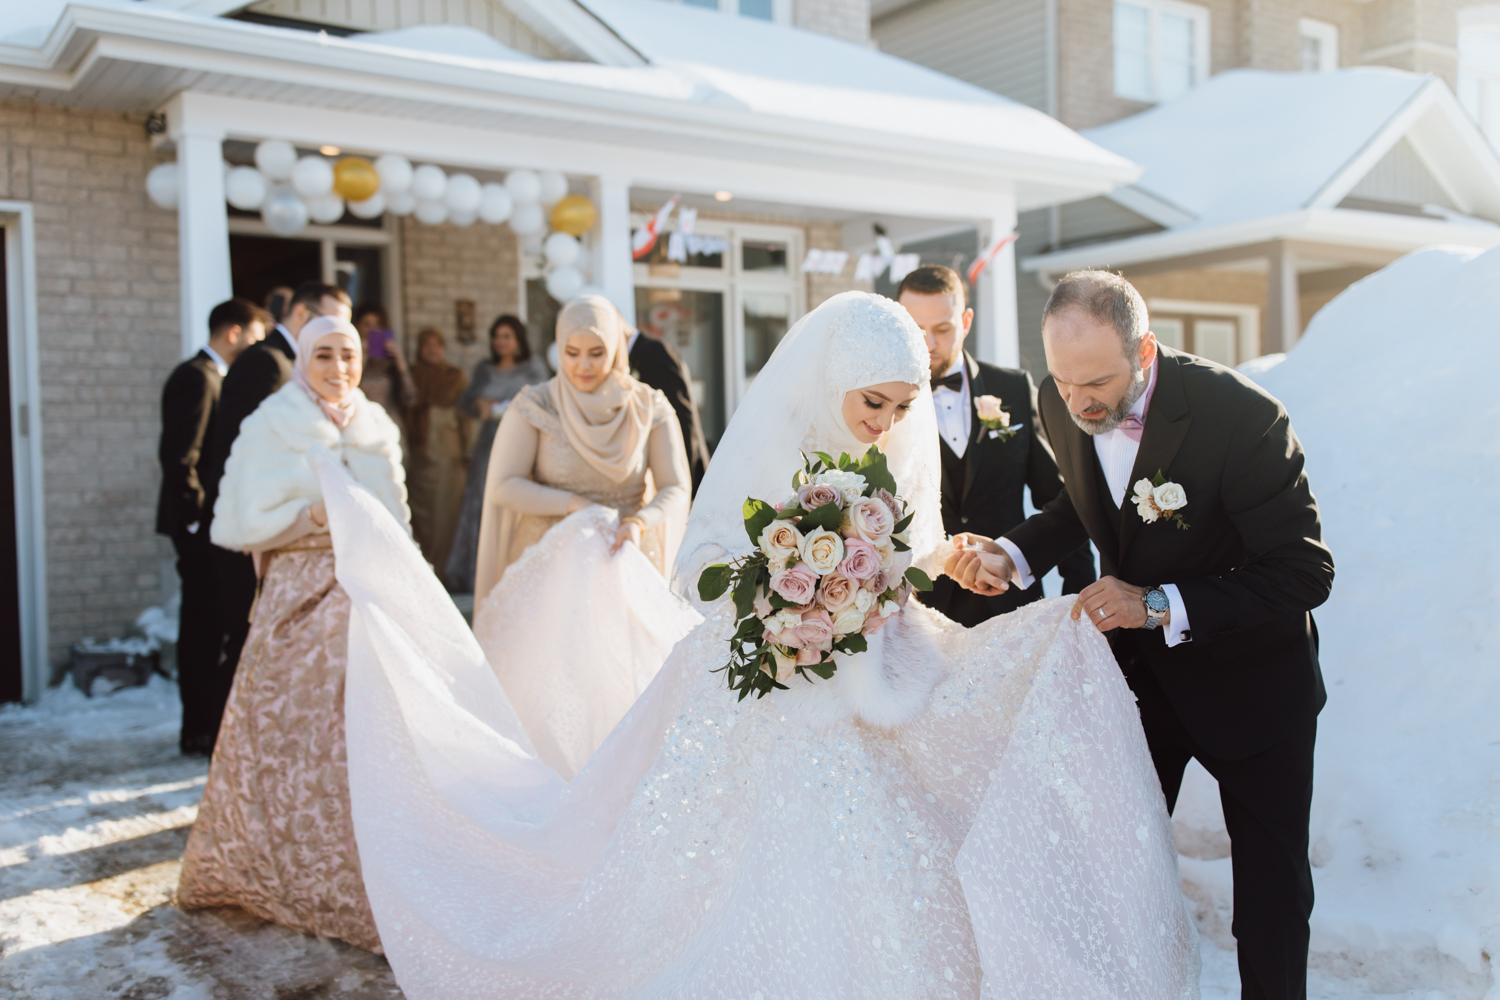 Bride leaving the house with her father